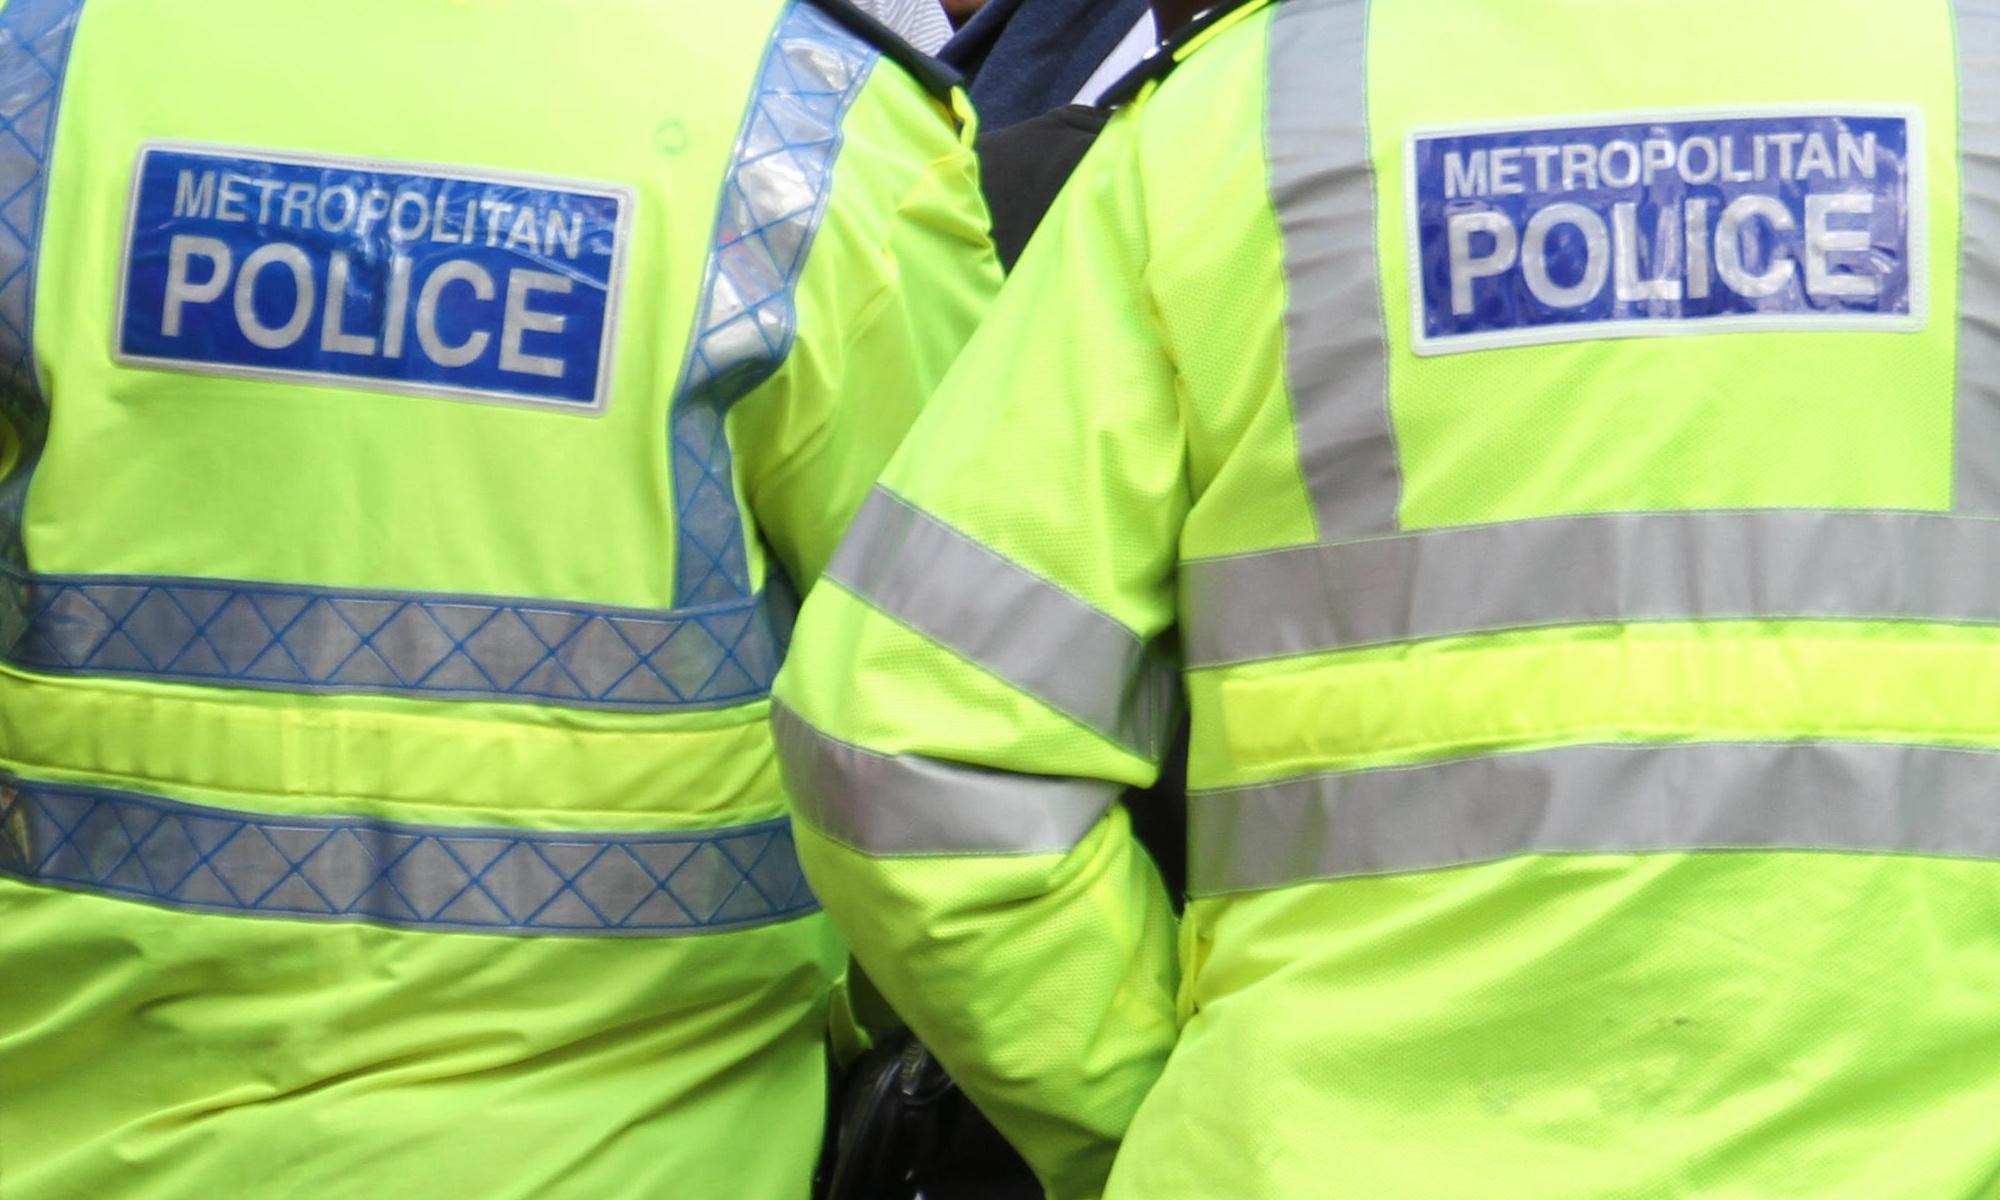 Man arrested after 'threatening to blow up flats'